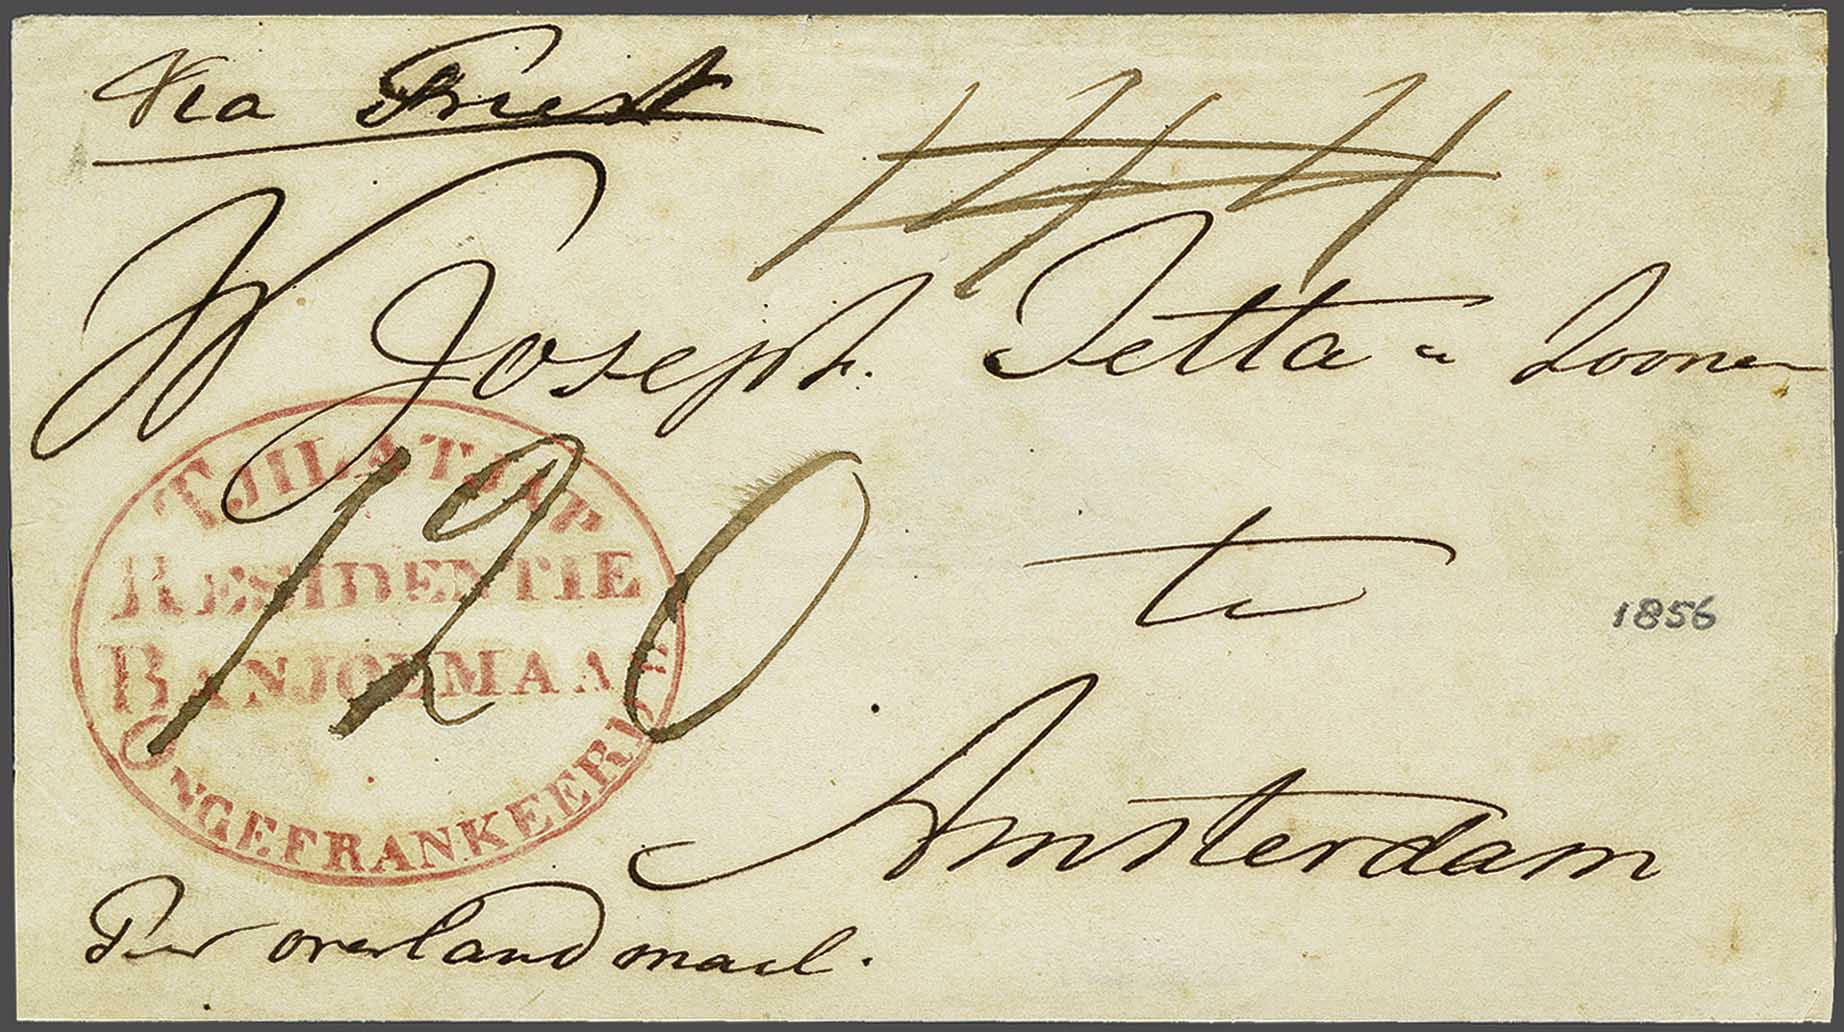 Lot 3740 - Netherlands and former colonies Netherlands Indies -  Corinphila Veilingen Auction 244 -Netherlands and former colonies, WW2 Postal History, Bosnia, German and British colonies, Egypt. - Day 3